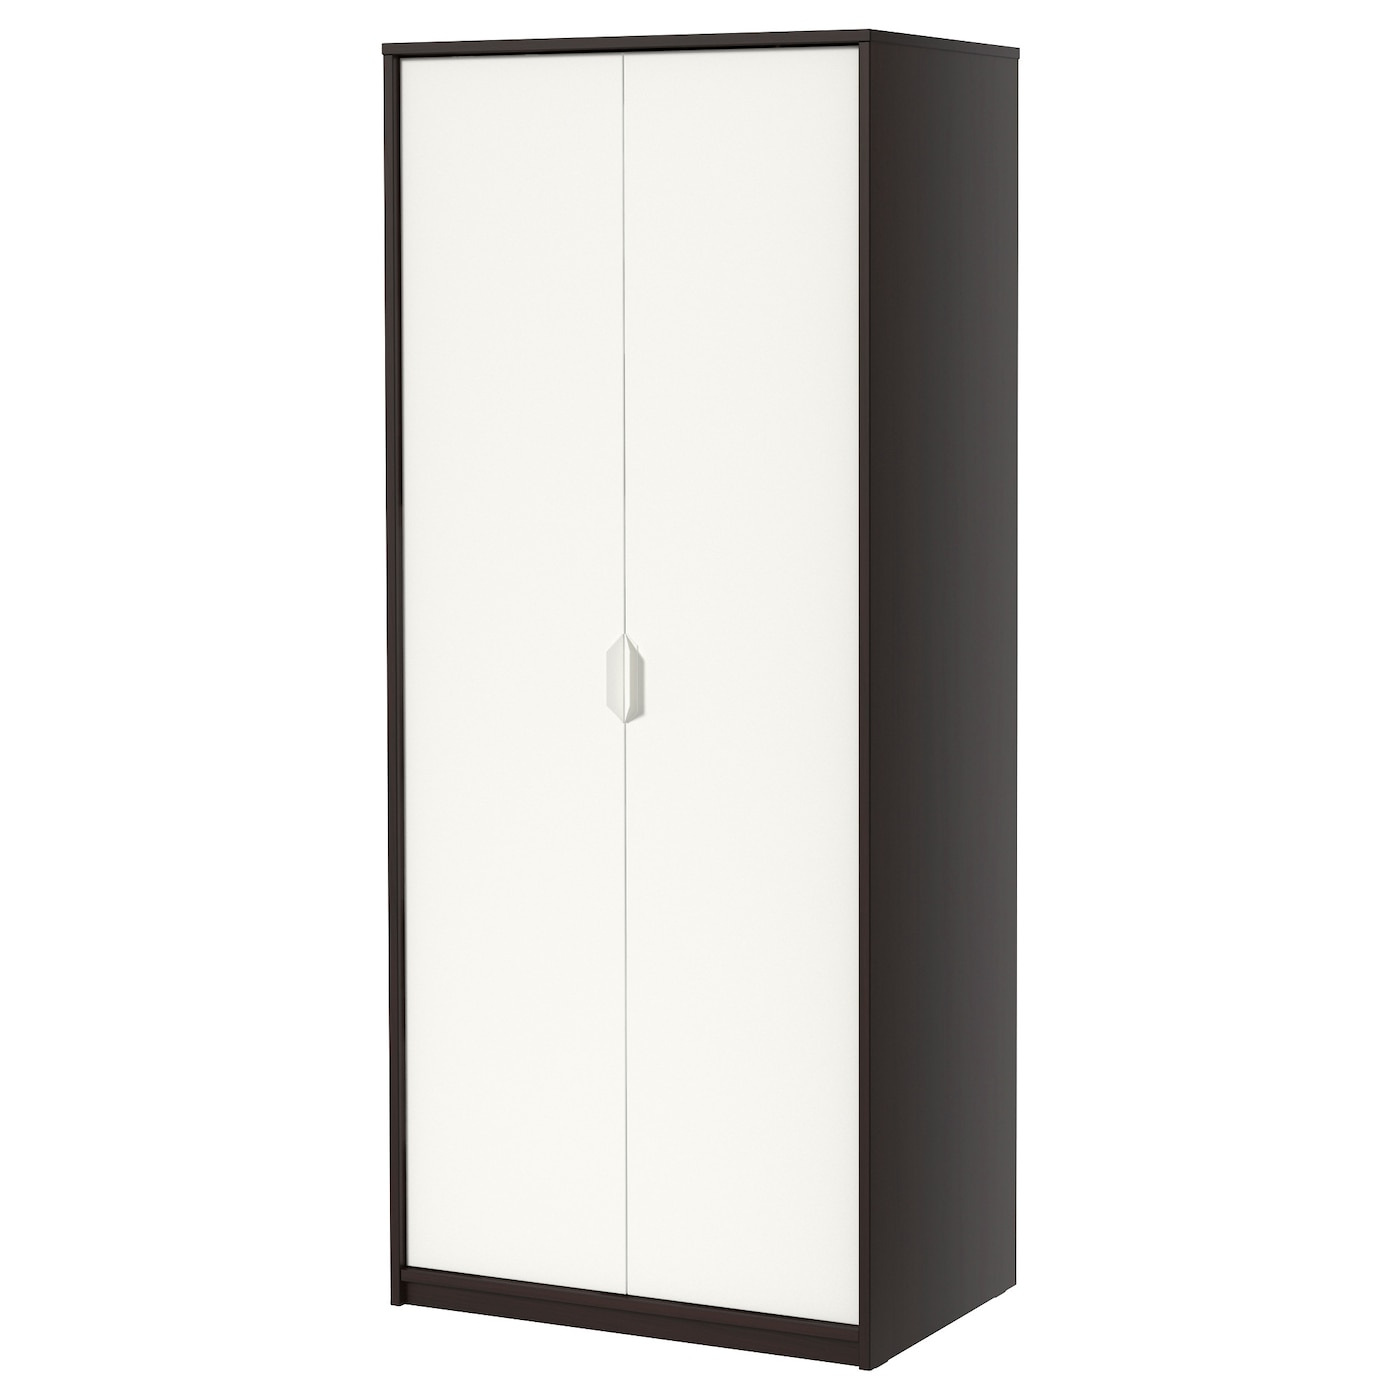 askvoll armoire brun noir blanc 80 x 52 x 189 cm ikea. Black Bedroom Furniture Sets. Home Design Ideas